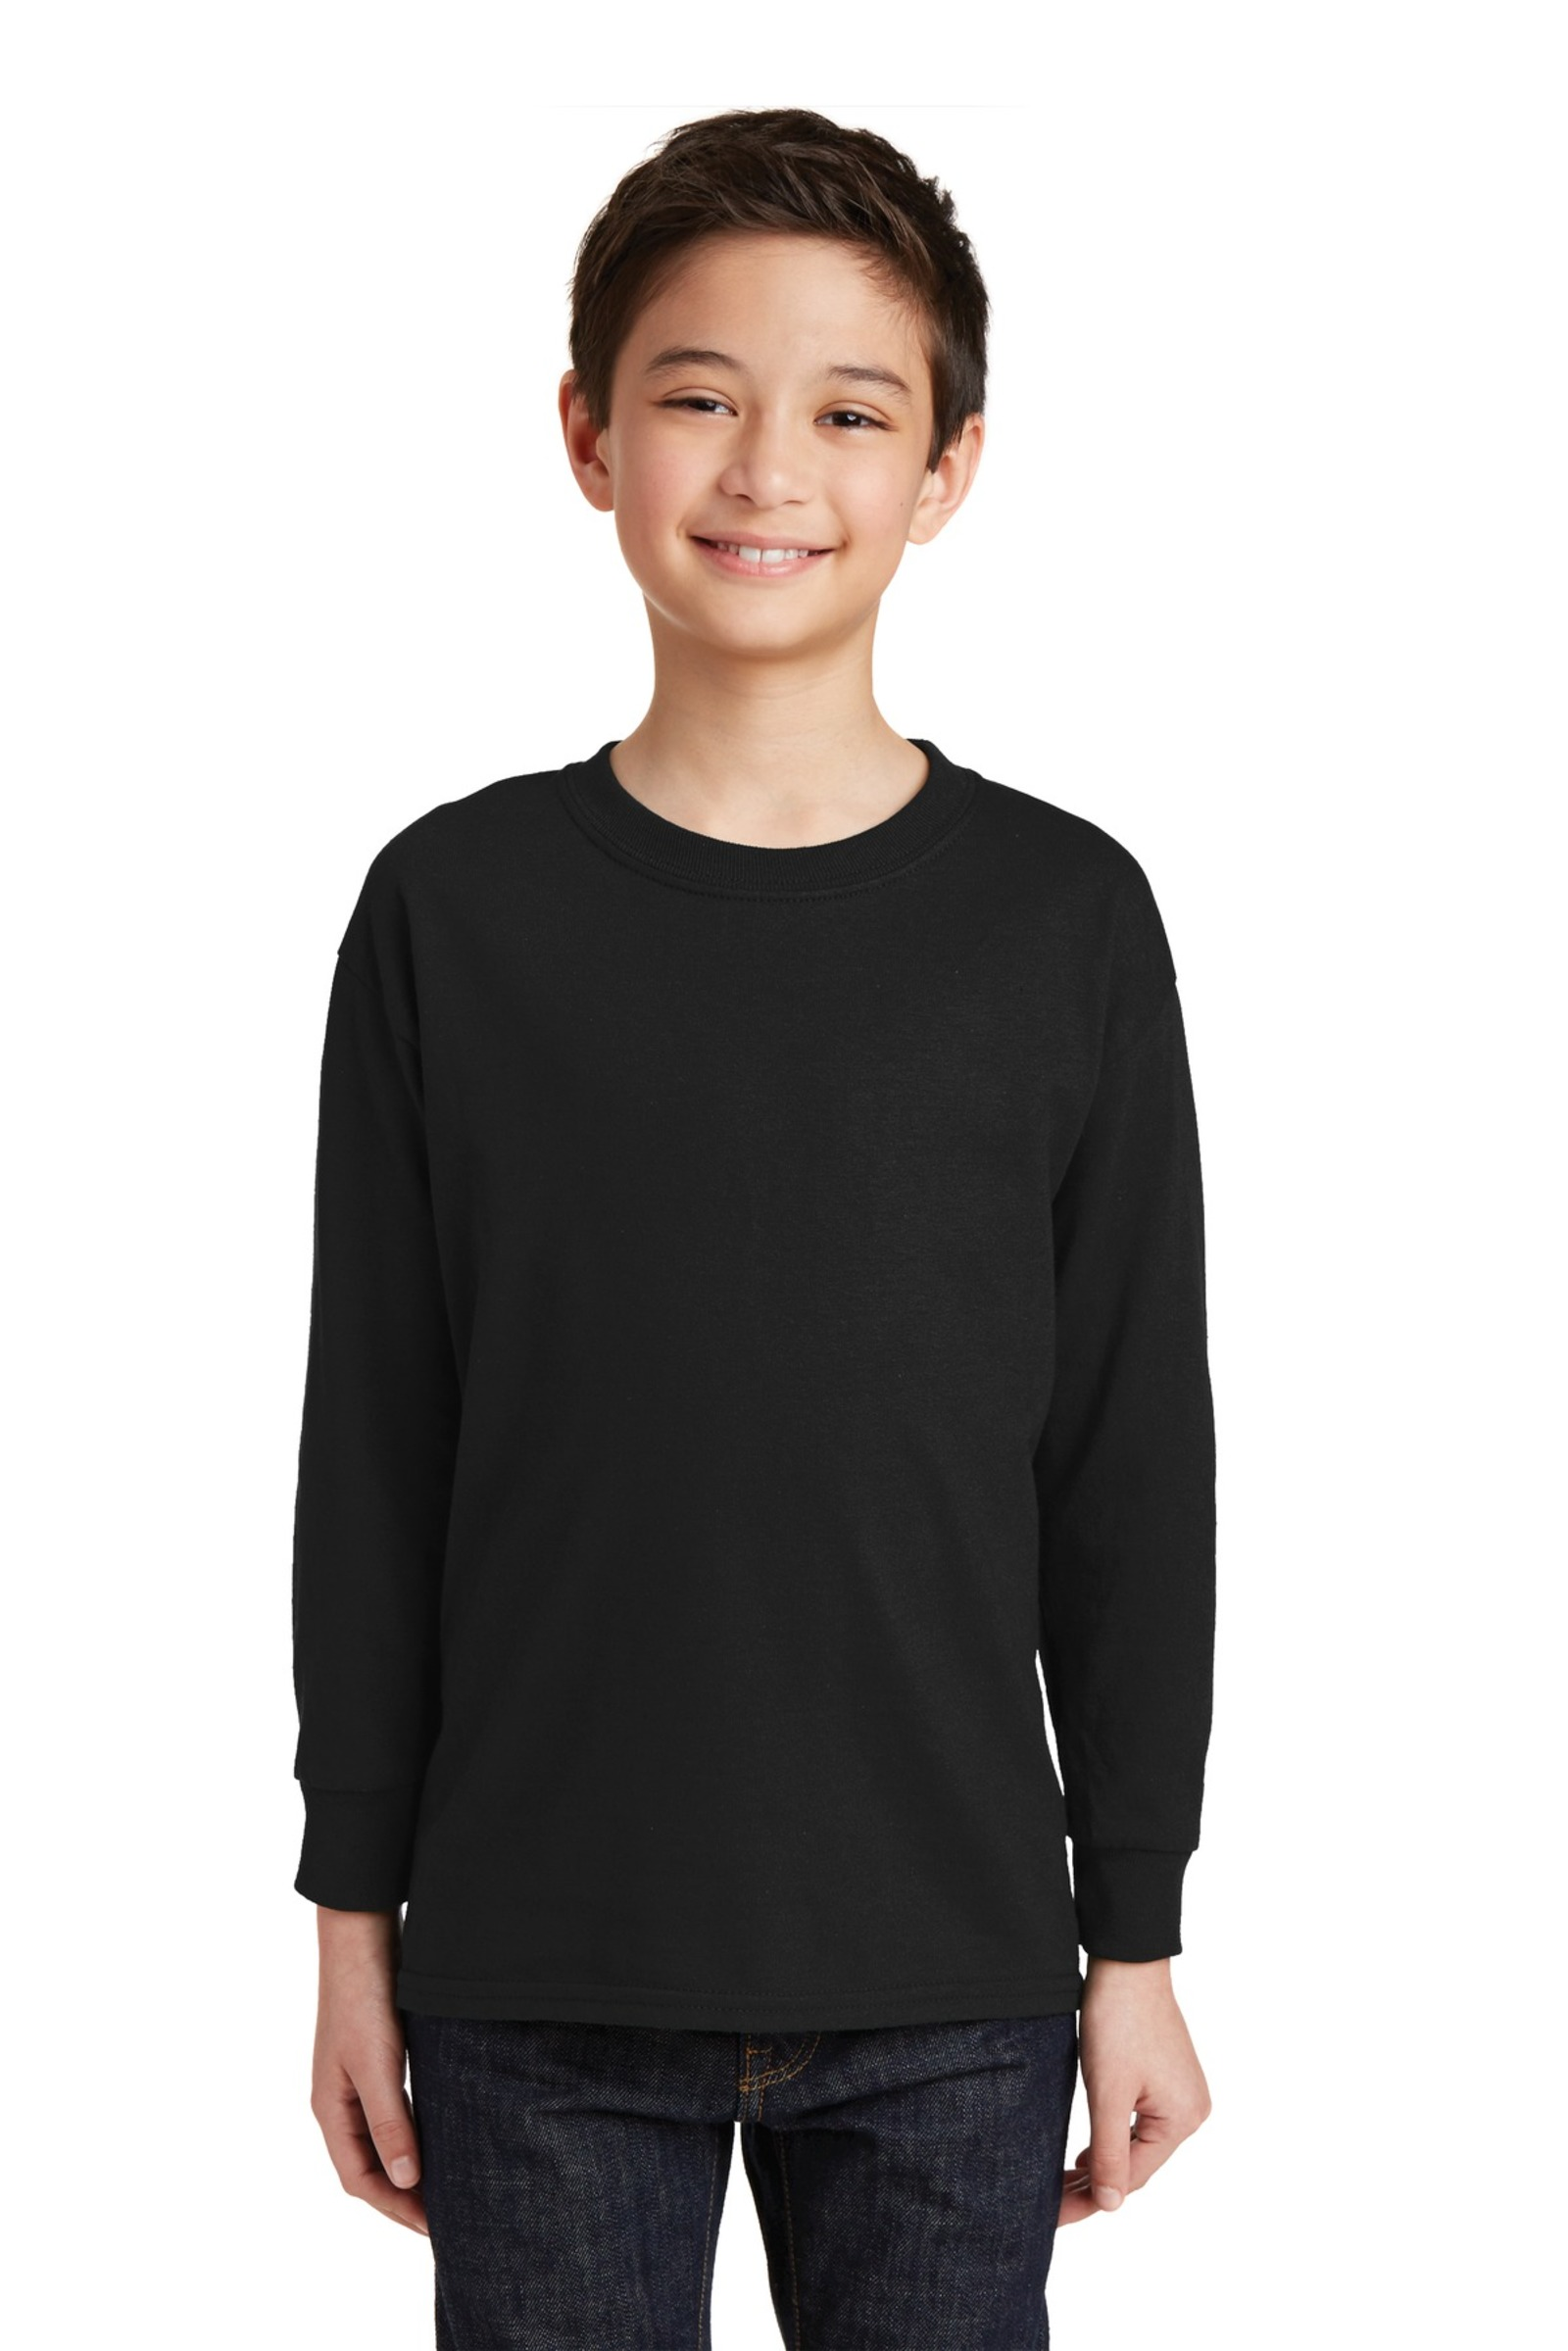 Gildan Embroidered Youth 100%  Heavy Cotton Long Sleeve T-Shirt